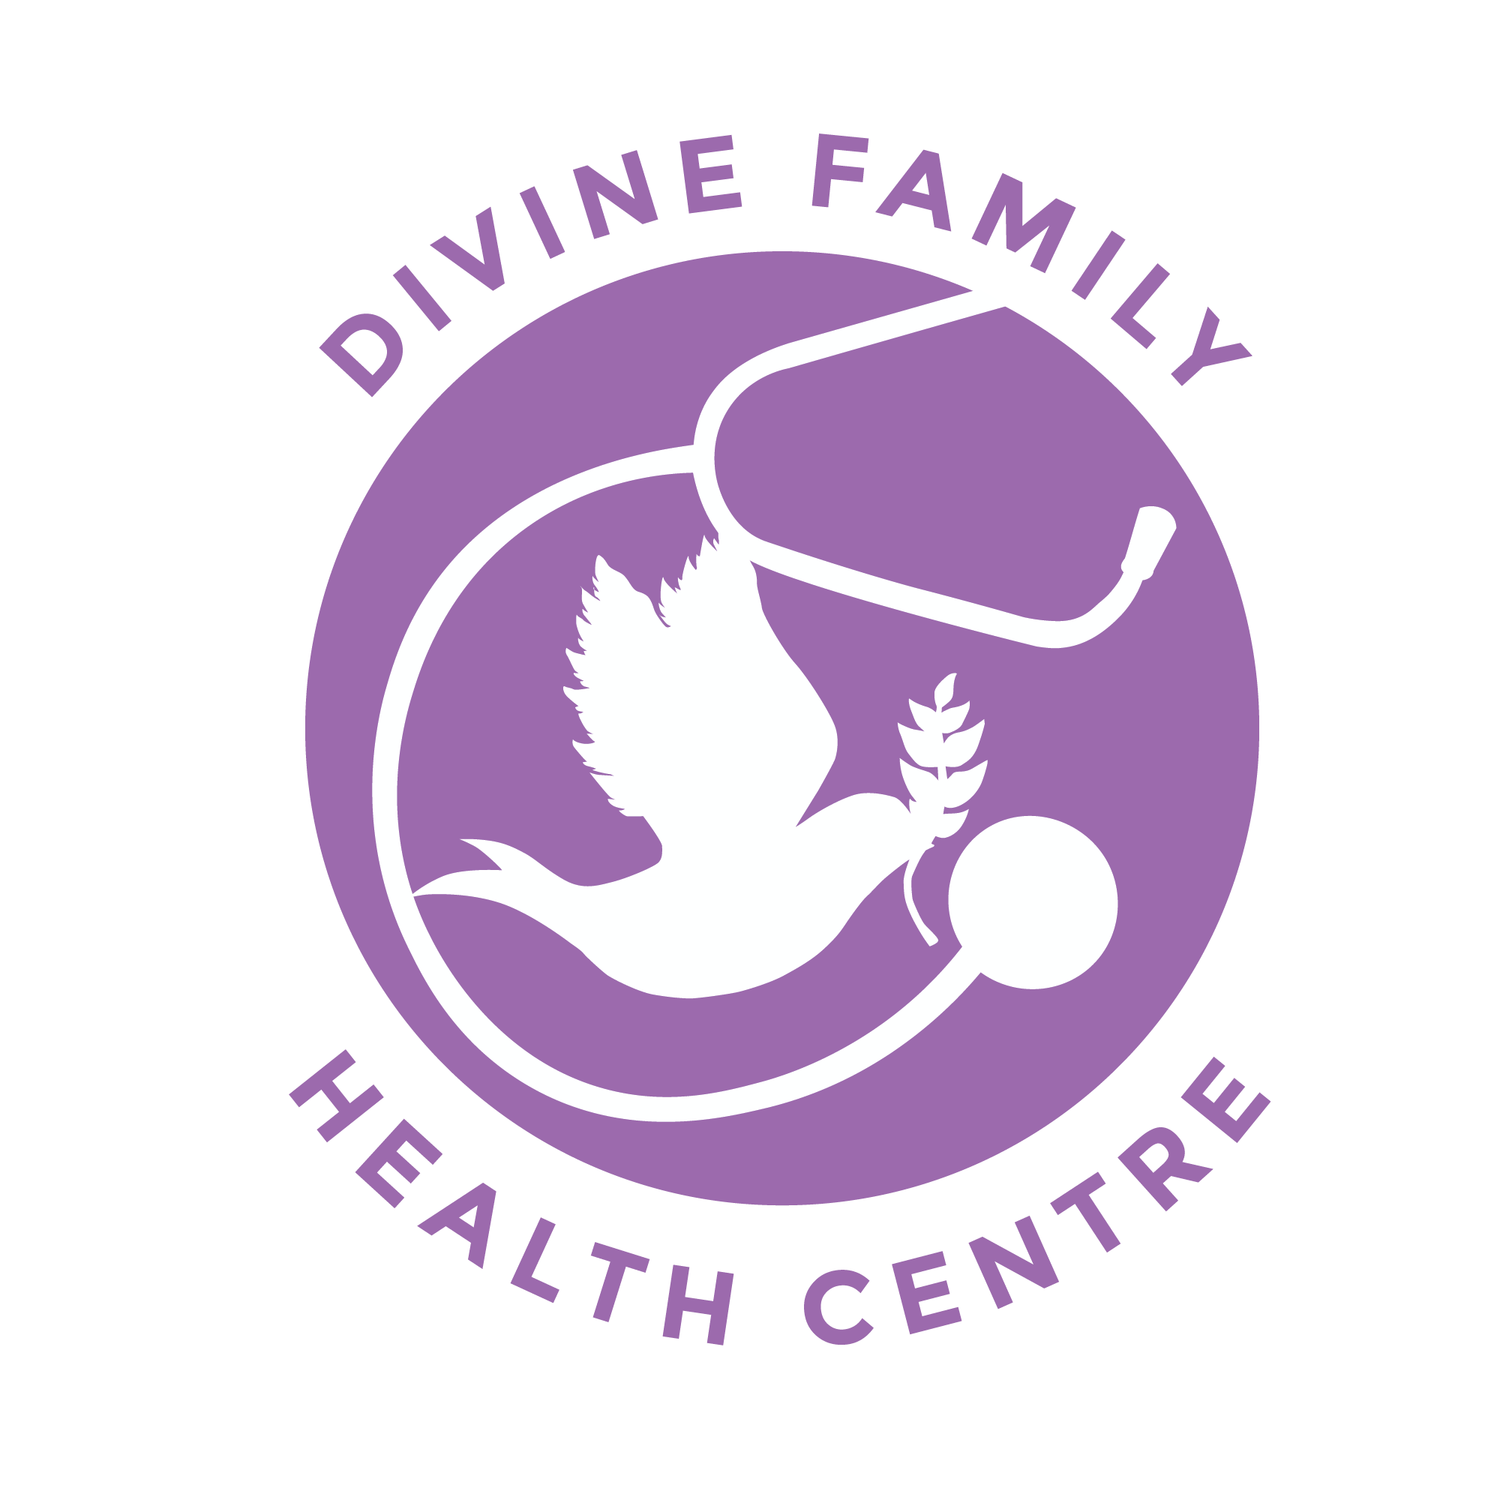 Divine Family Health Centre